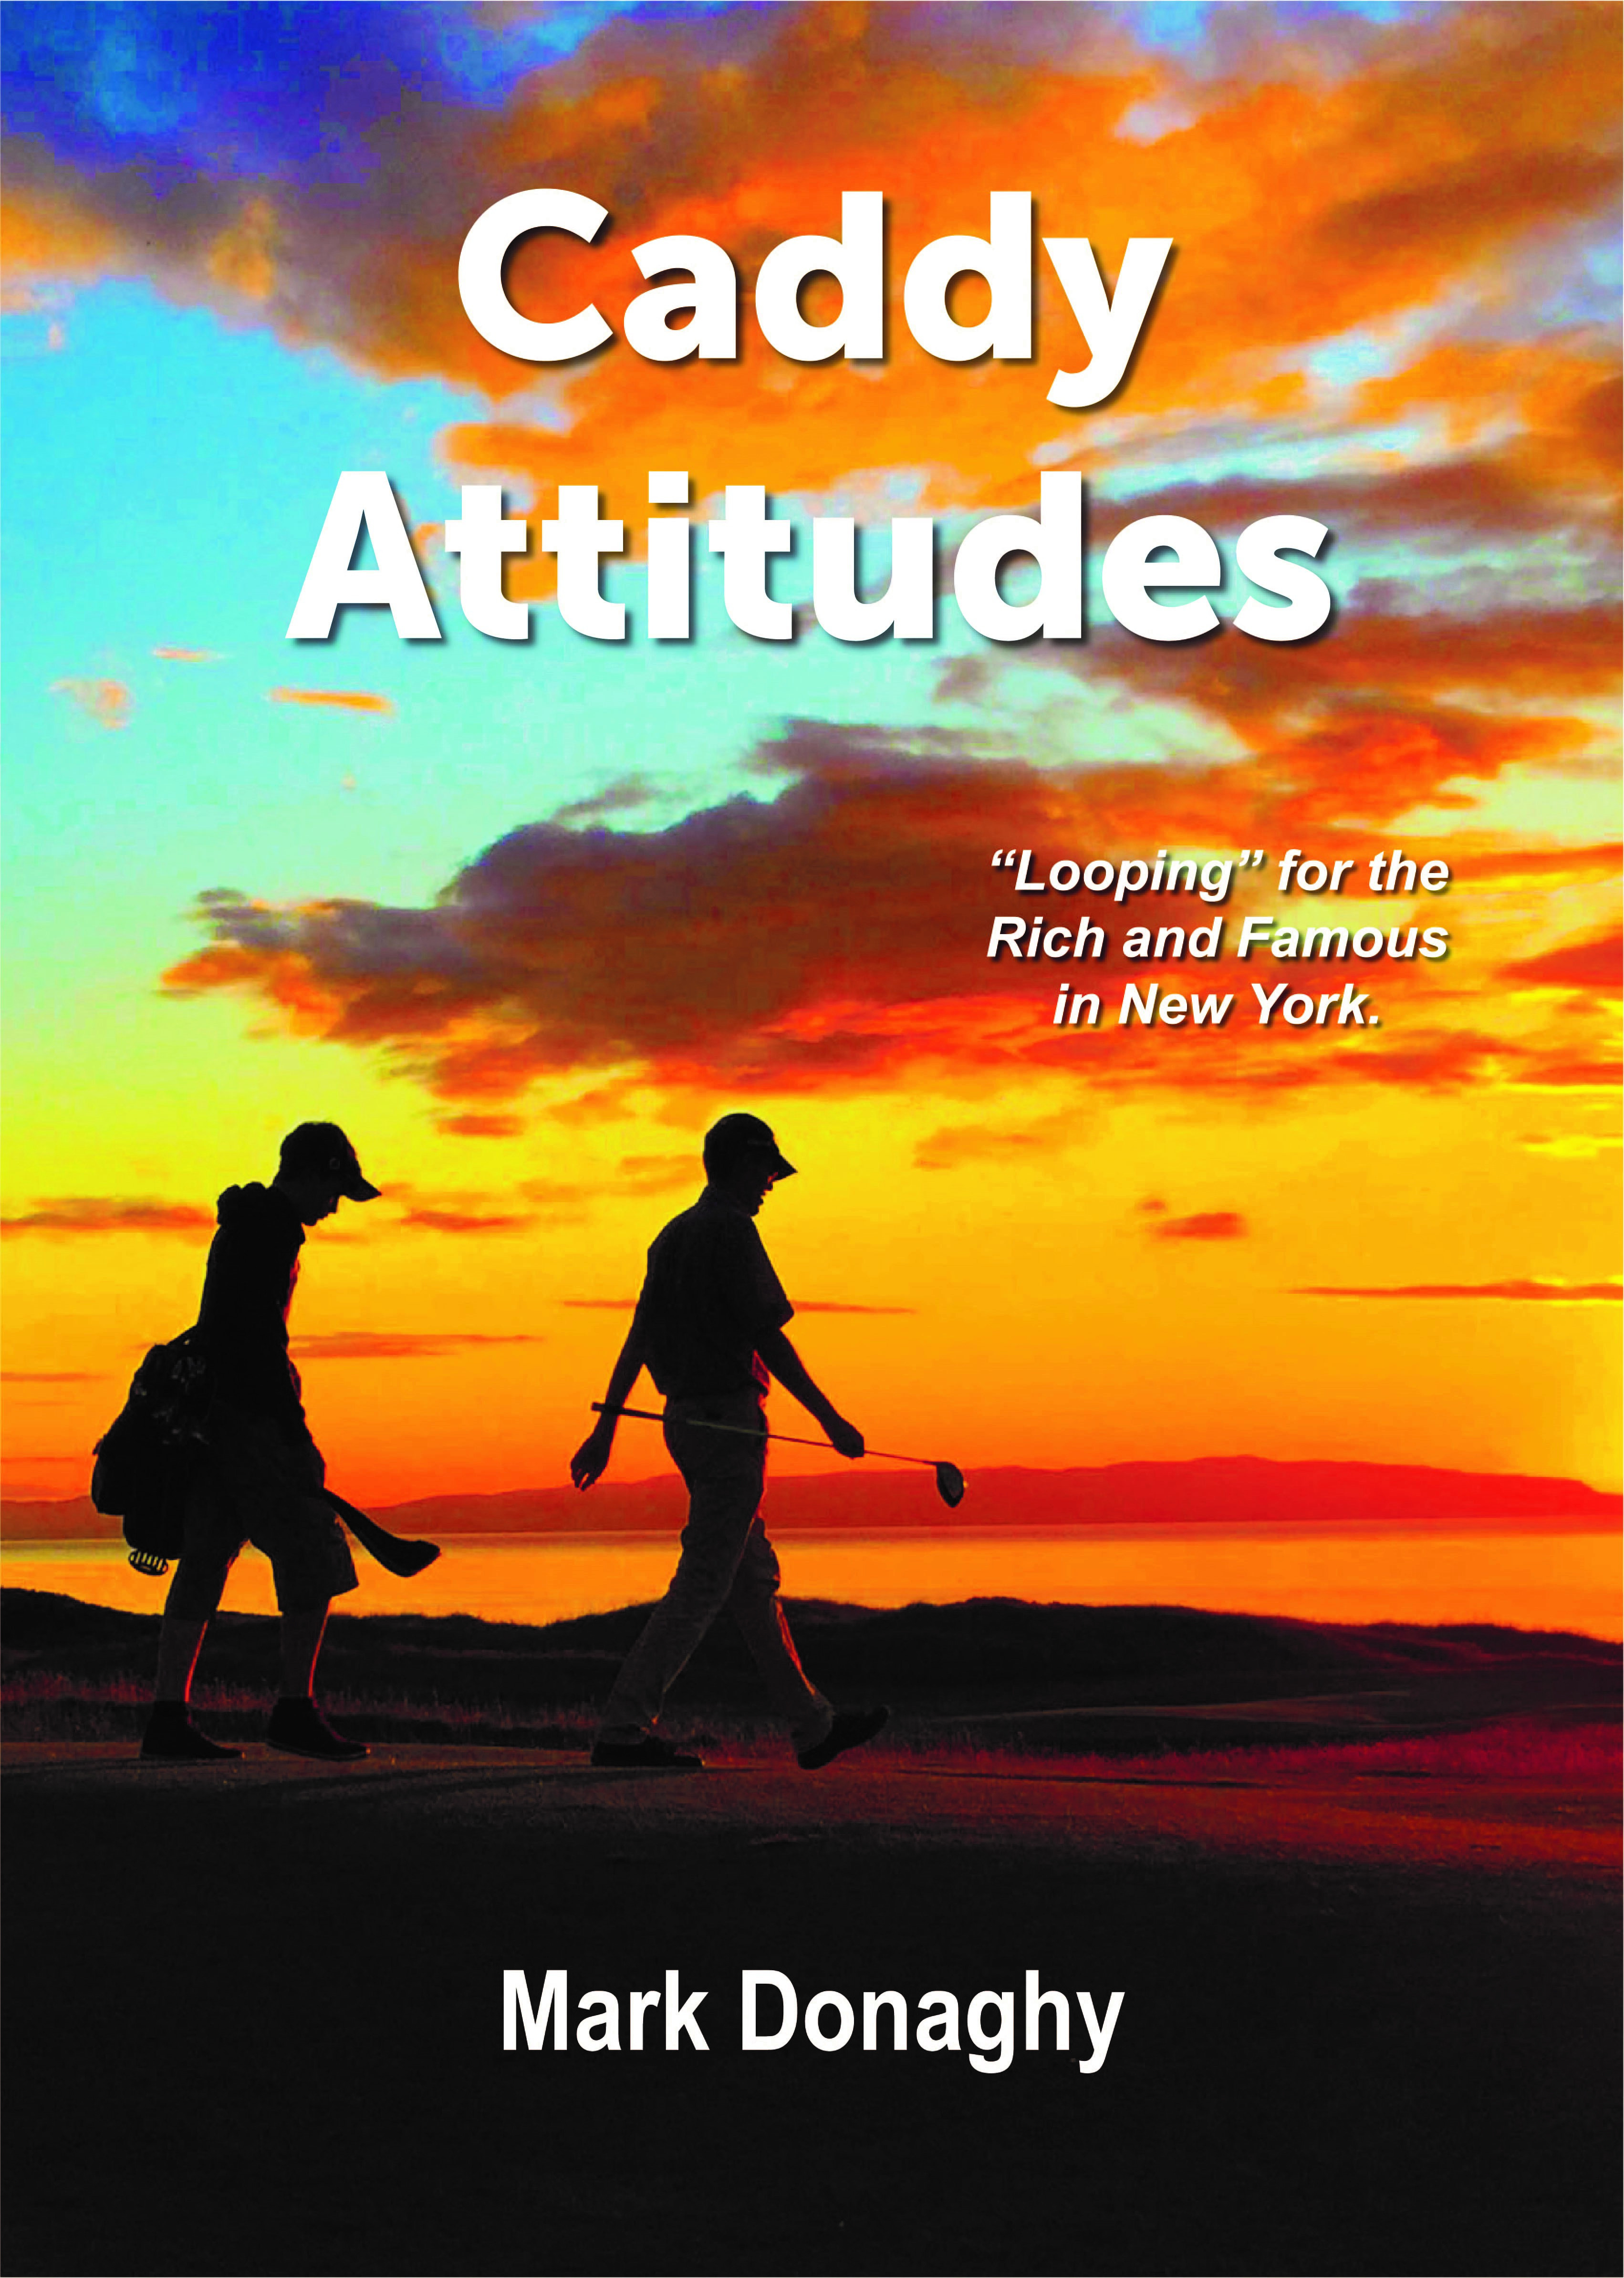 Finally published! Caddy Attitudes is now available for download